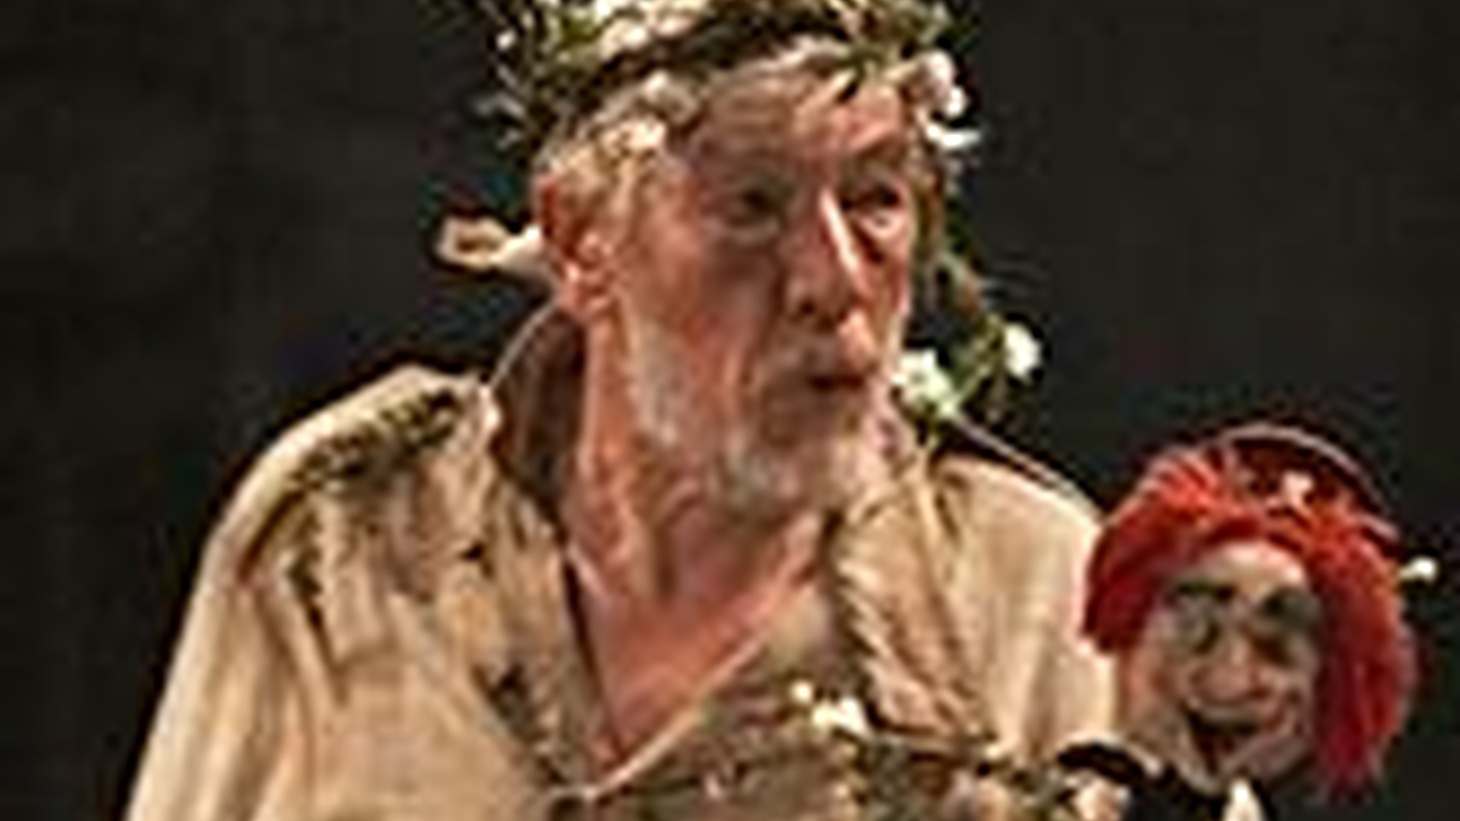 """Is there any cause in nature that makes these hard hearts?"" This line from Act III of Shakespeare's King Lear best sums up 2007 from the perspective of a theater-goer..."